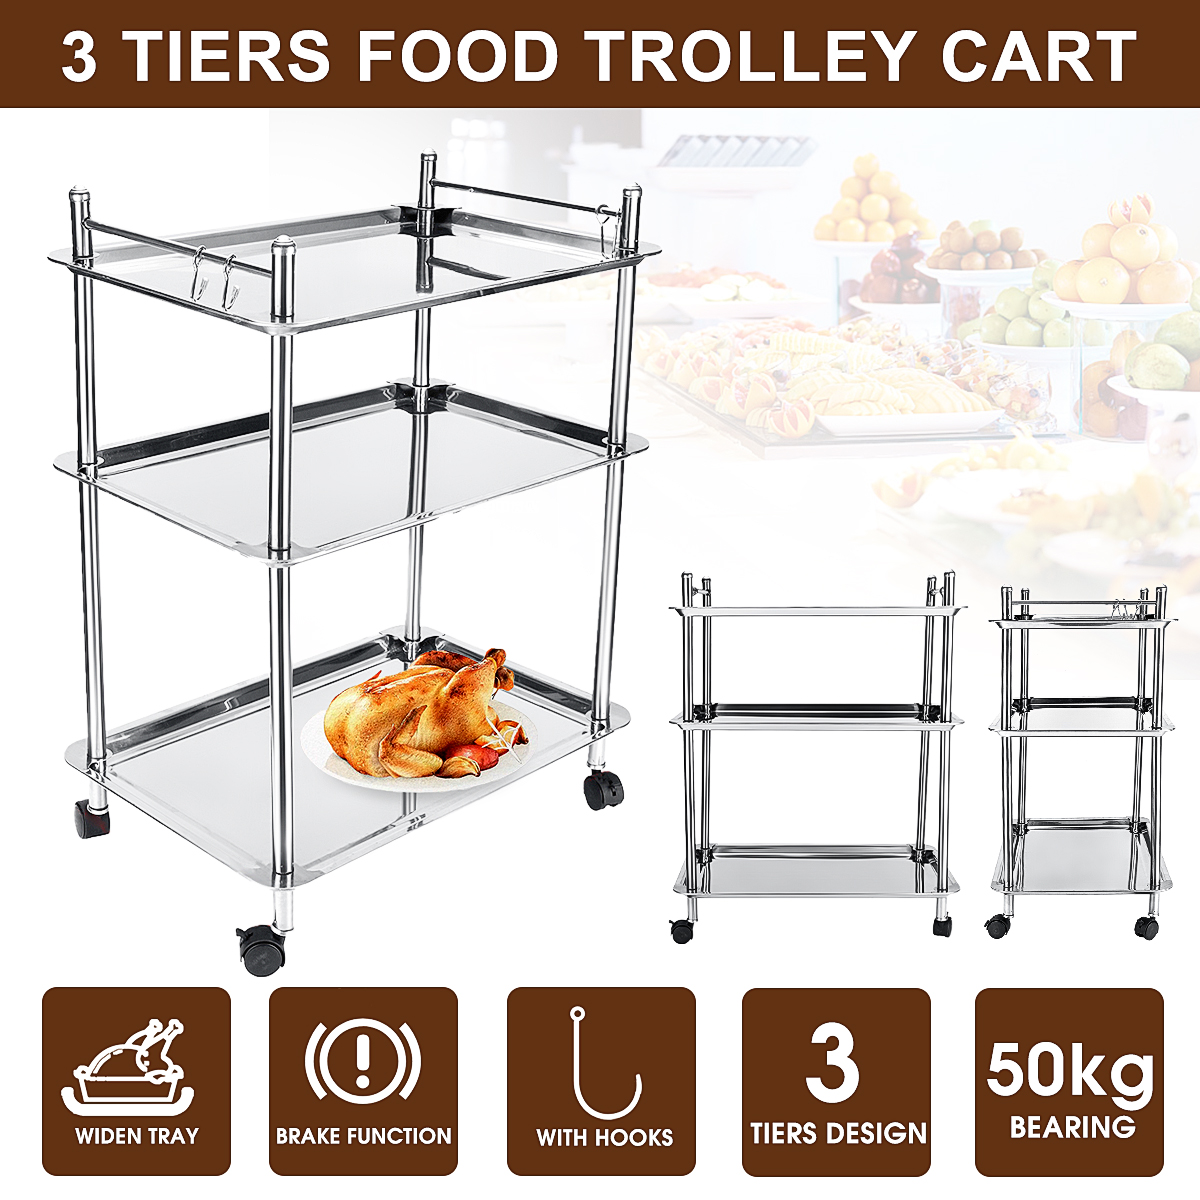 Stainless Steel Food Trolley Cart 3 Tiers Hotel Restaurant Serving Catering Train Cafe Trolley Tool